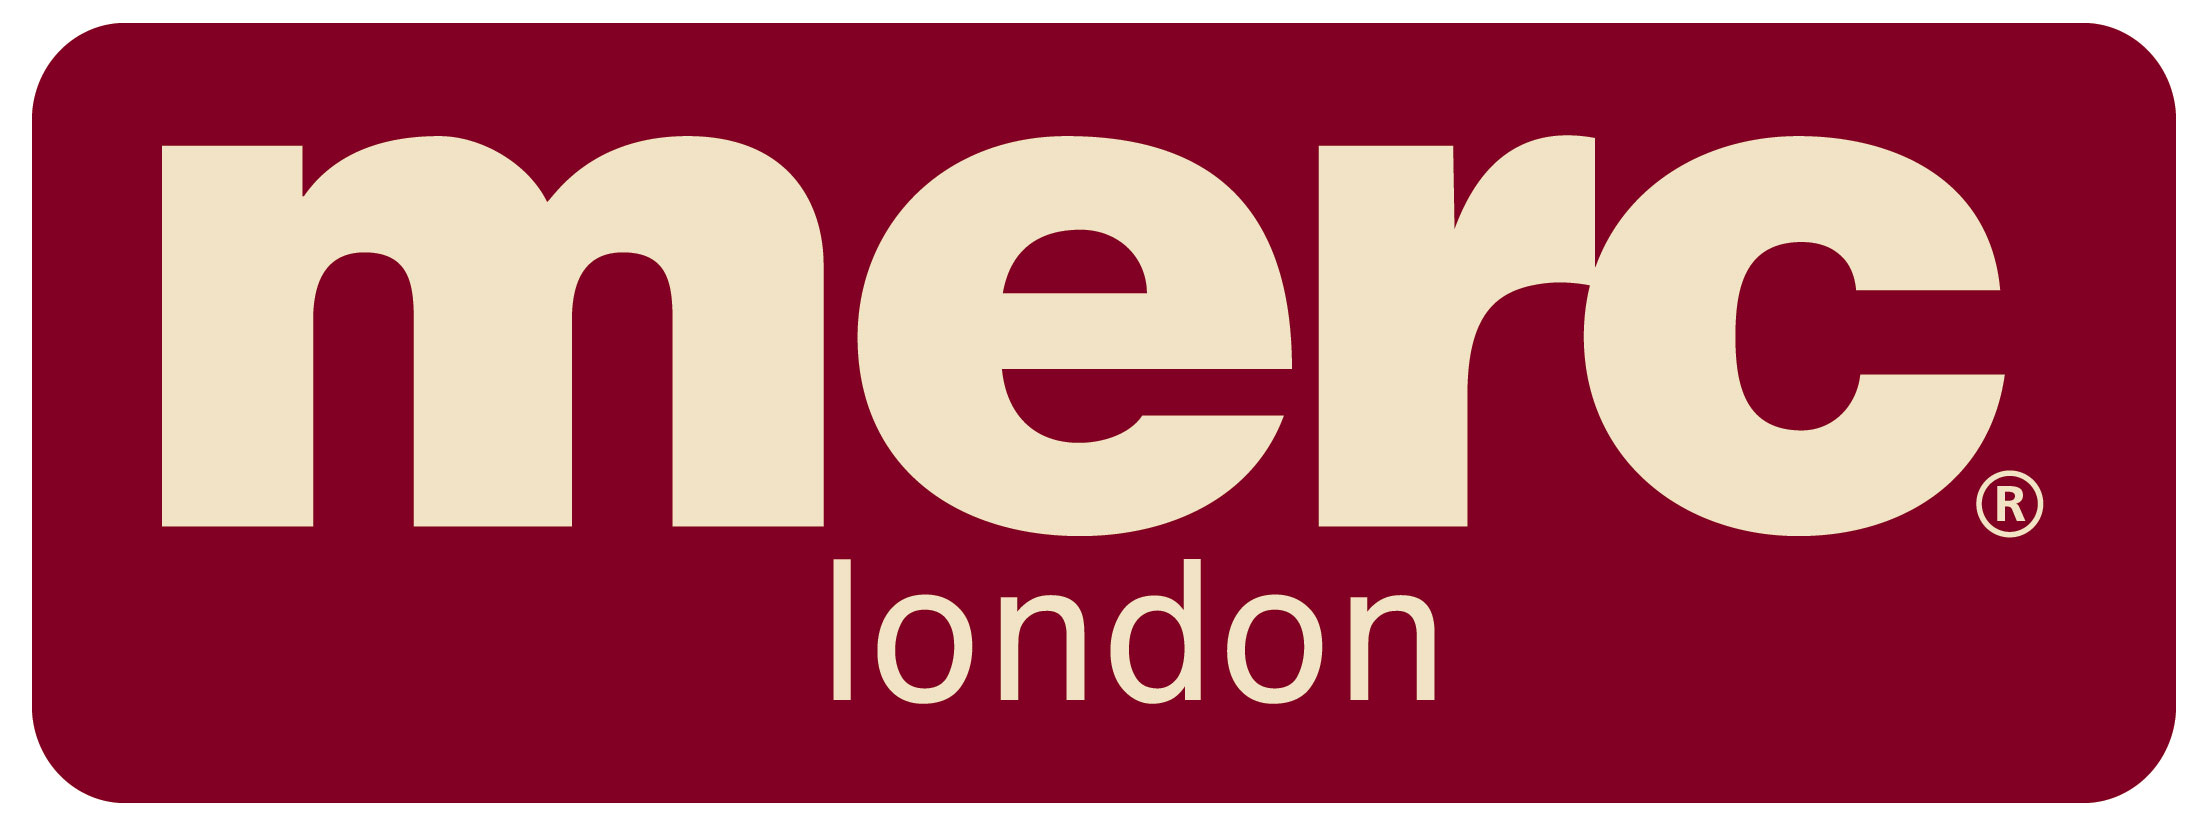 MERC-LONDON-LOGO-WITH-BORDER